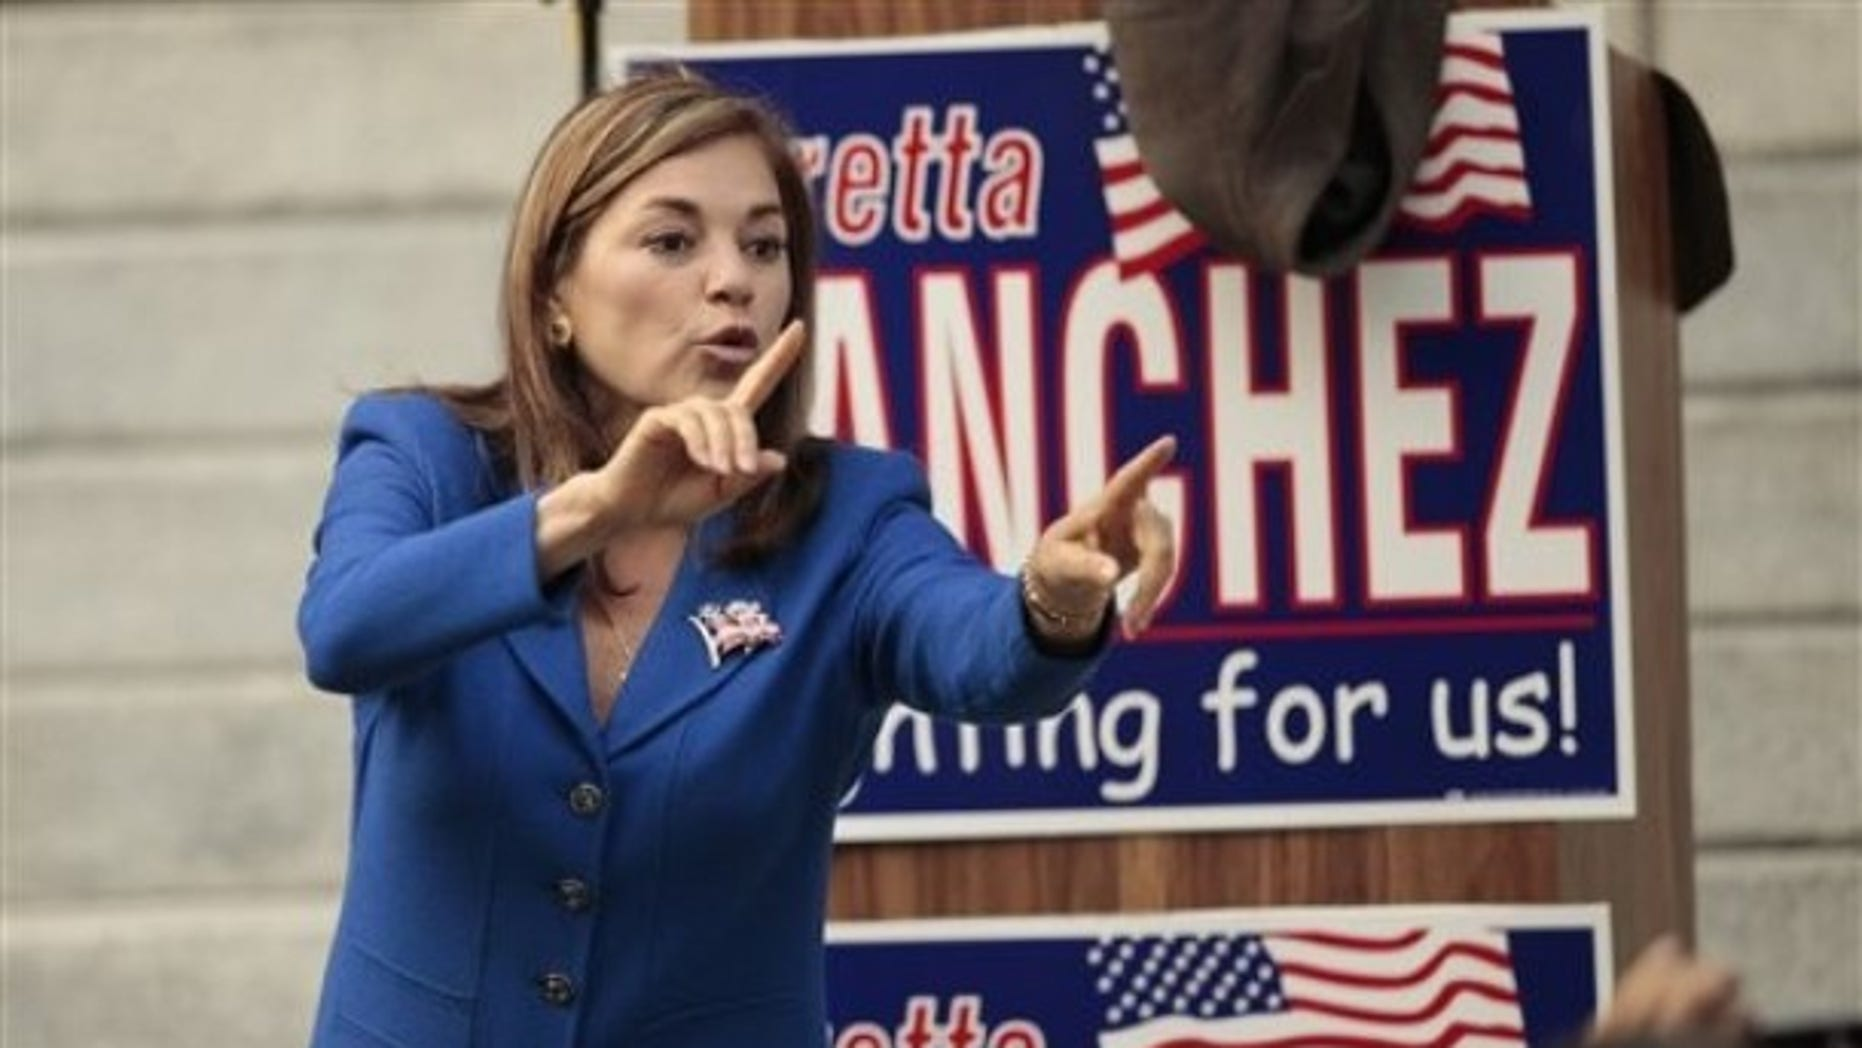 Rep. Loretta Sanchez, D-Calif. , speaks to supporters on Friday, Oct. 15, 2010, outside the Old Orange County Courthouse in Santa Ana, Calif. (AP)